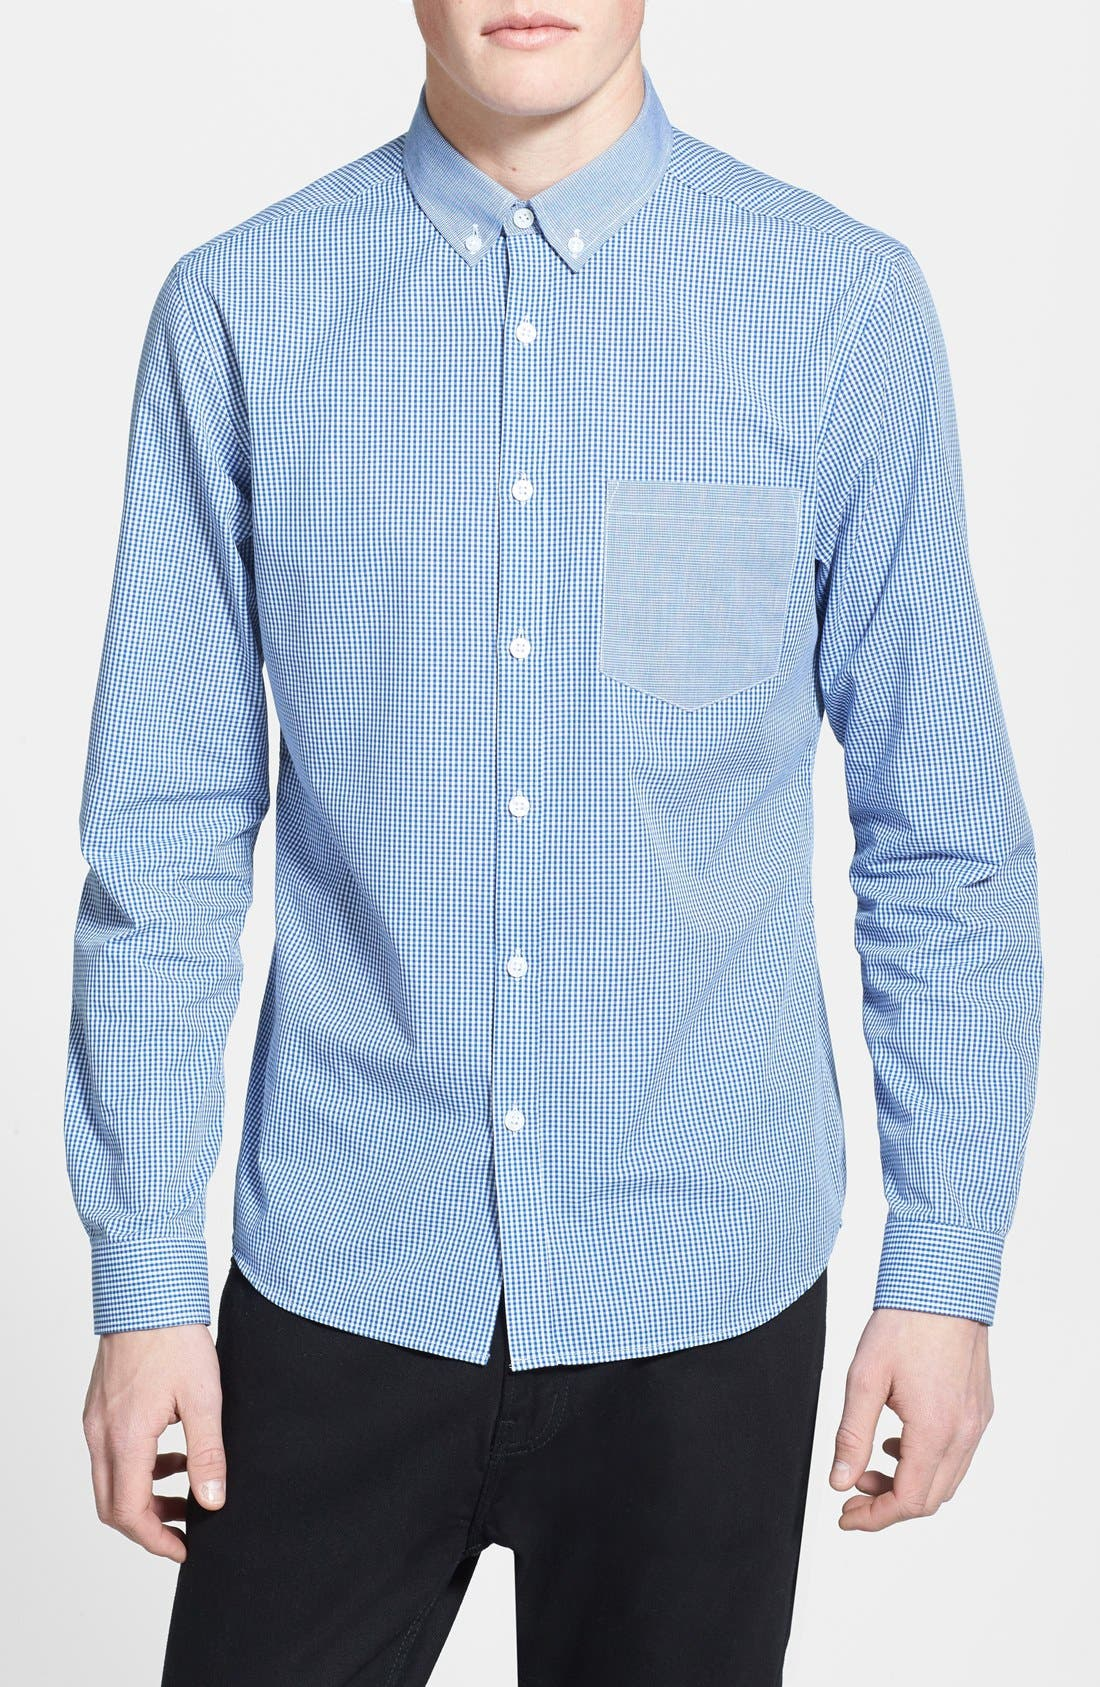 Main Image - Topman Slim Fit Chambray Trimmed Gingham Shirt